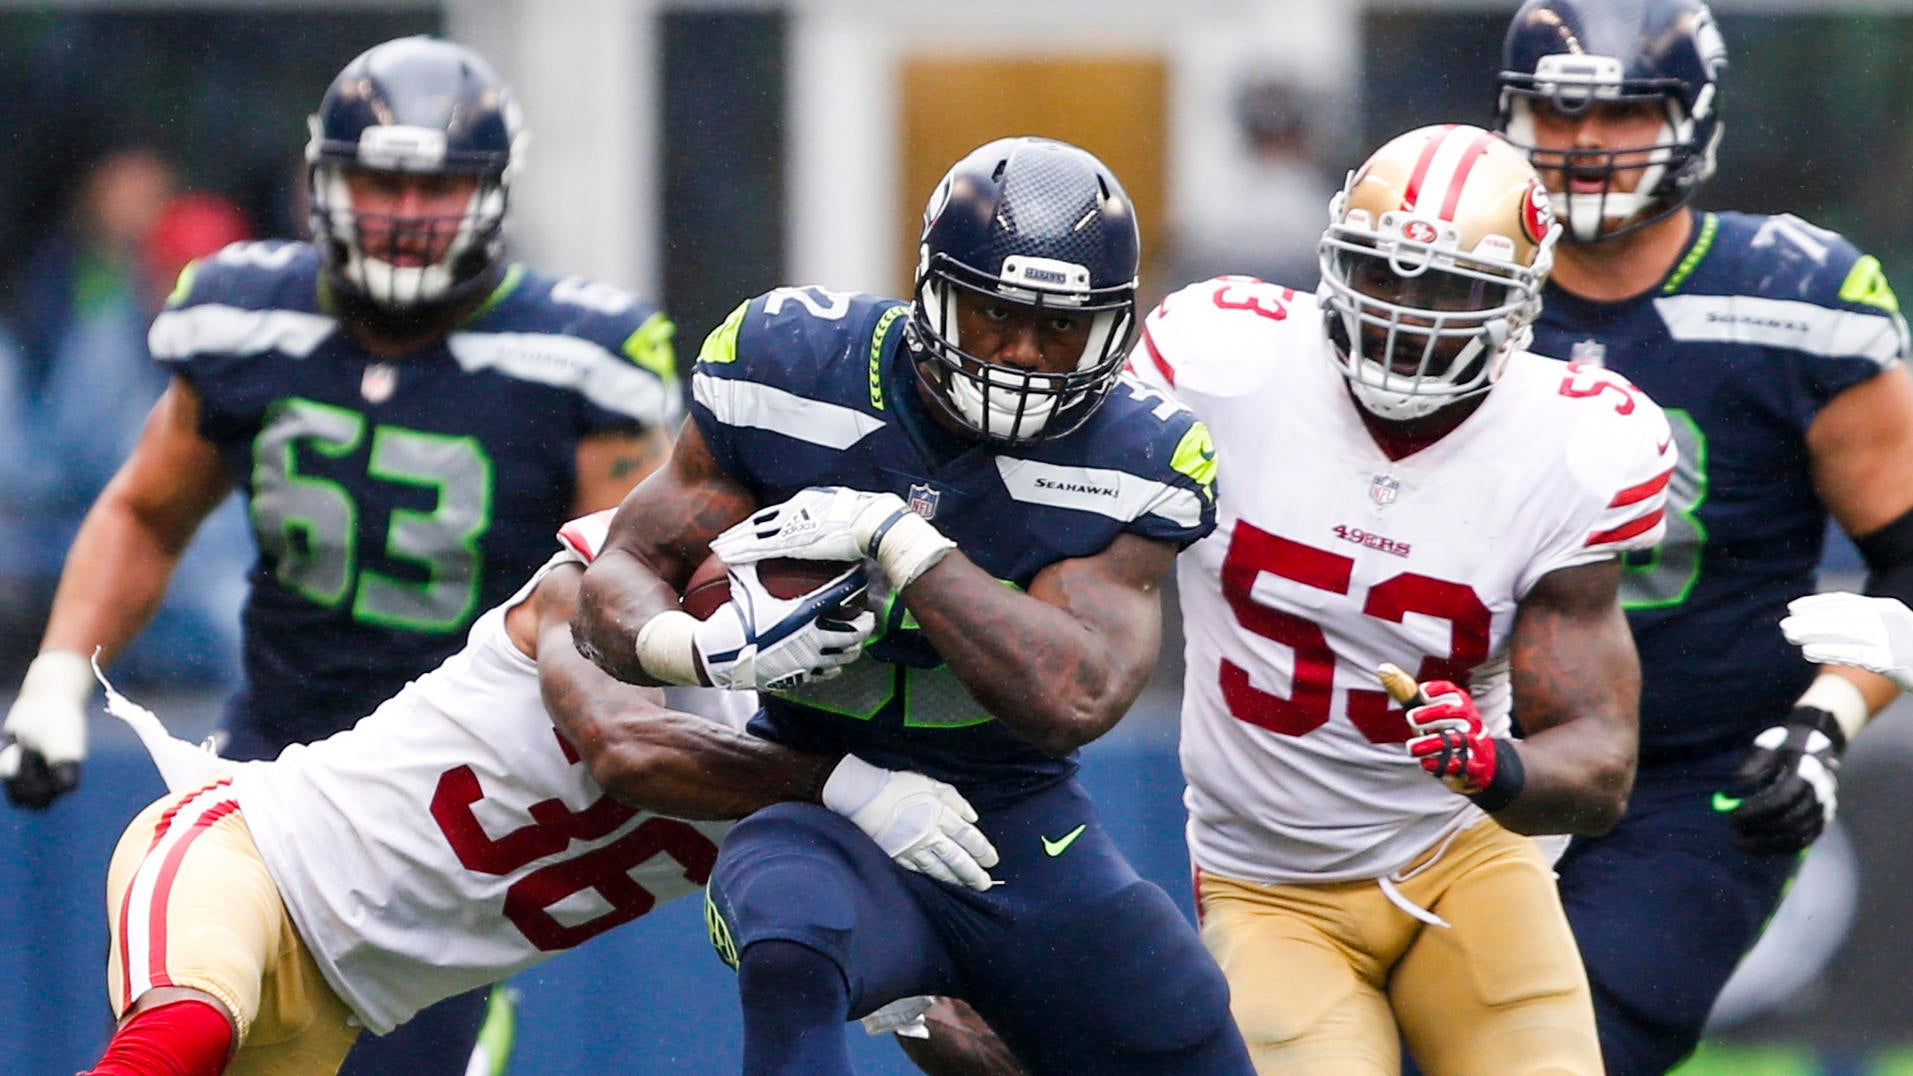 Early Week 2 Fantasy Football waiver wire: Chris Carson is the running back to add, but Chris Thompson and Samaje Perine worth a look with Rob Kelley hurt